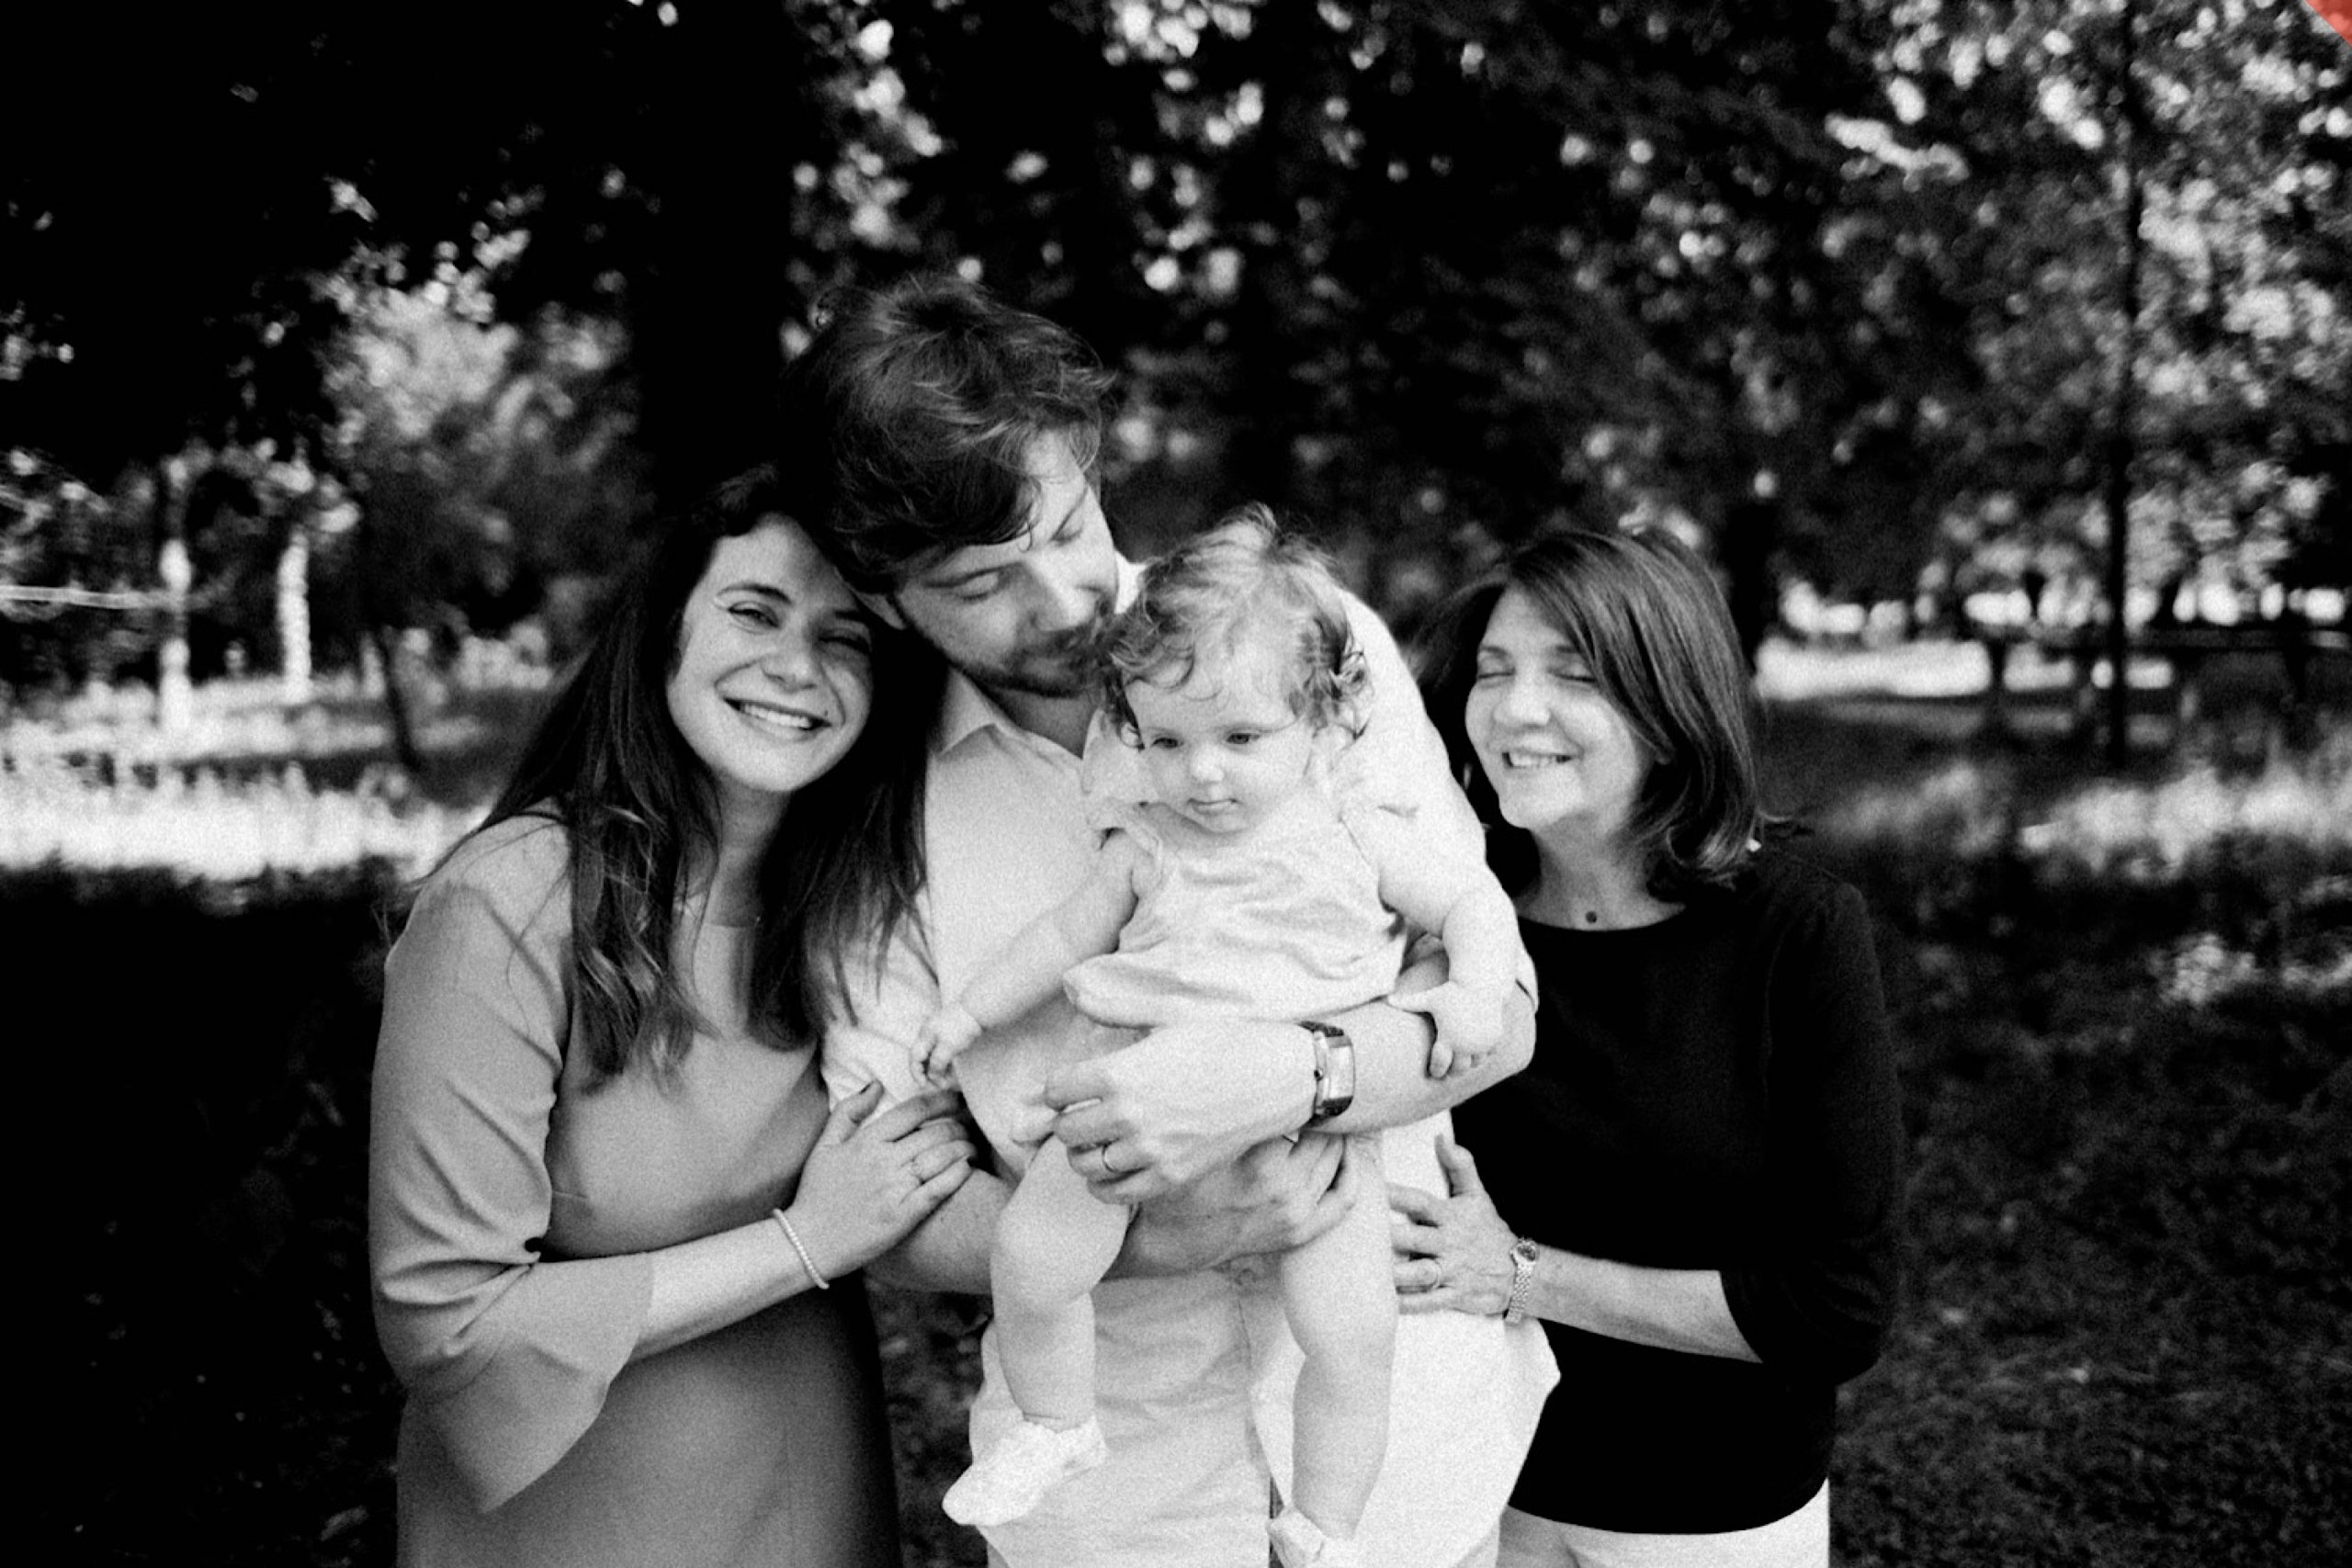 Relaxed Family Portraits of a family - Mum, Dad, Nonna and baby - standing together in the Parco di Monza.